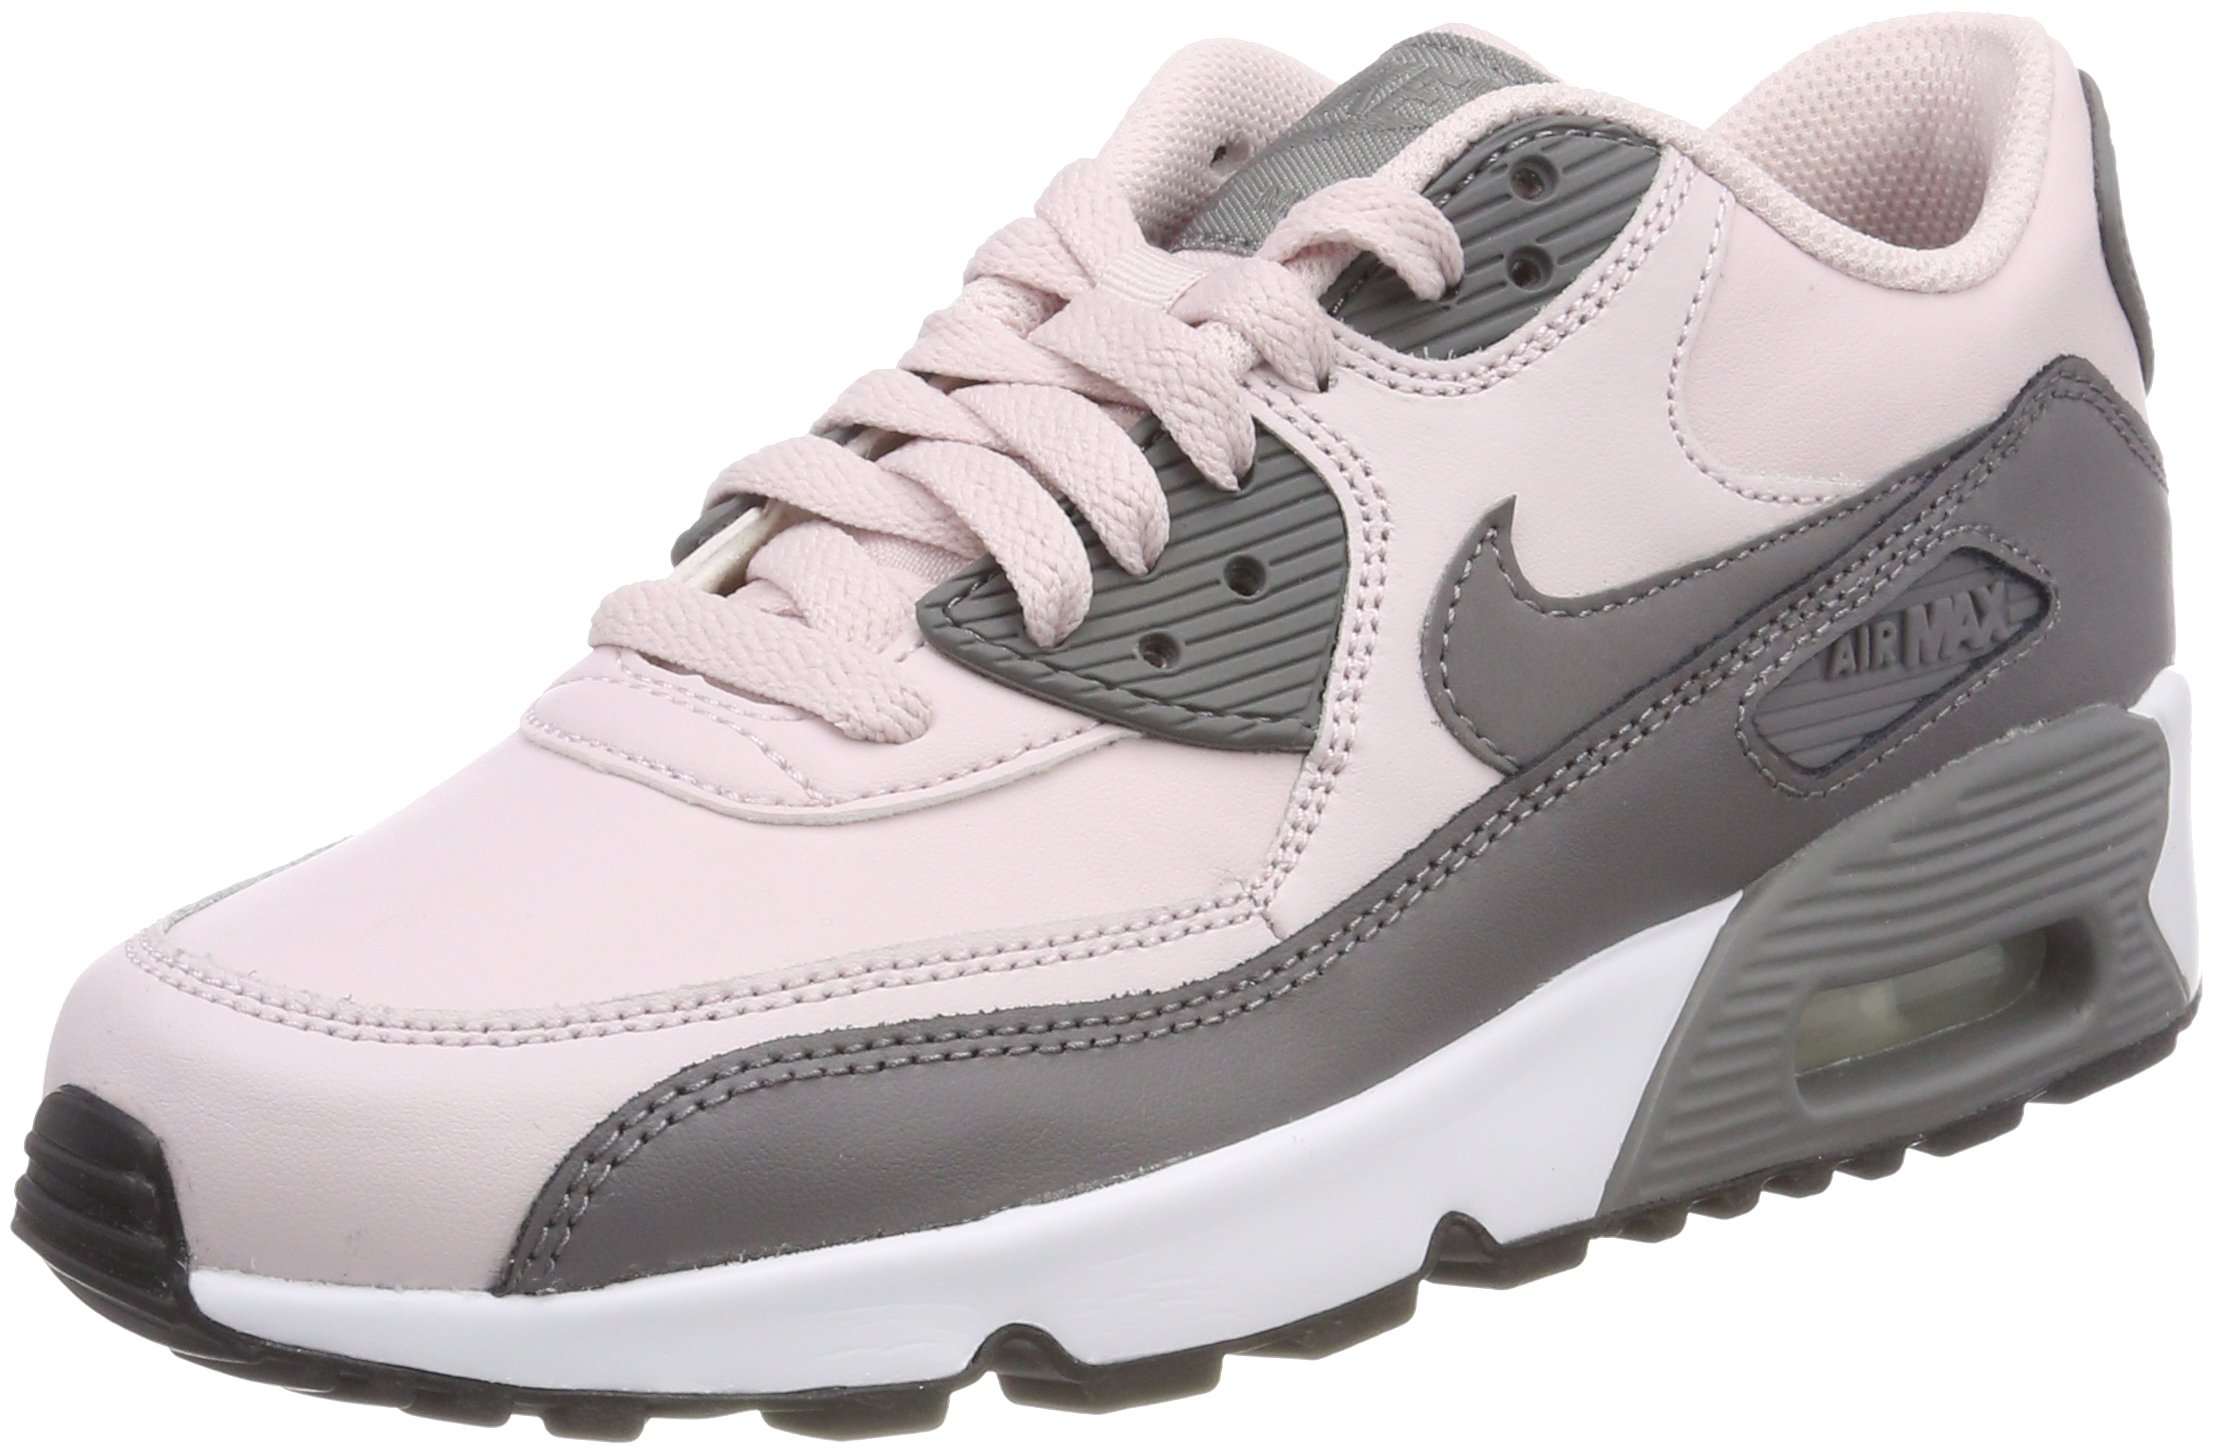 dc834c42ebcb77 Galleon - Nike Air Max 90 LTR Girl s Shoe